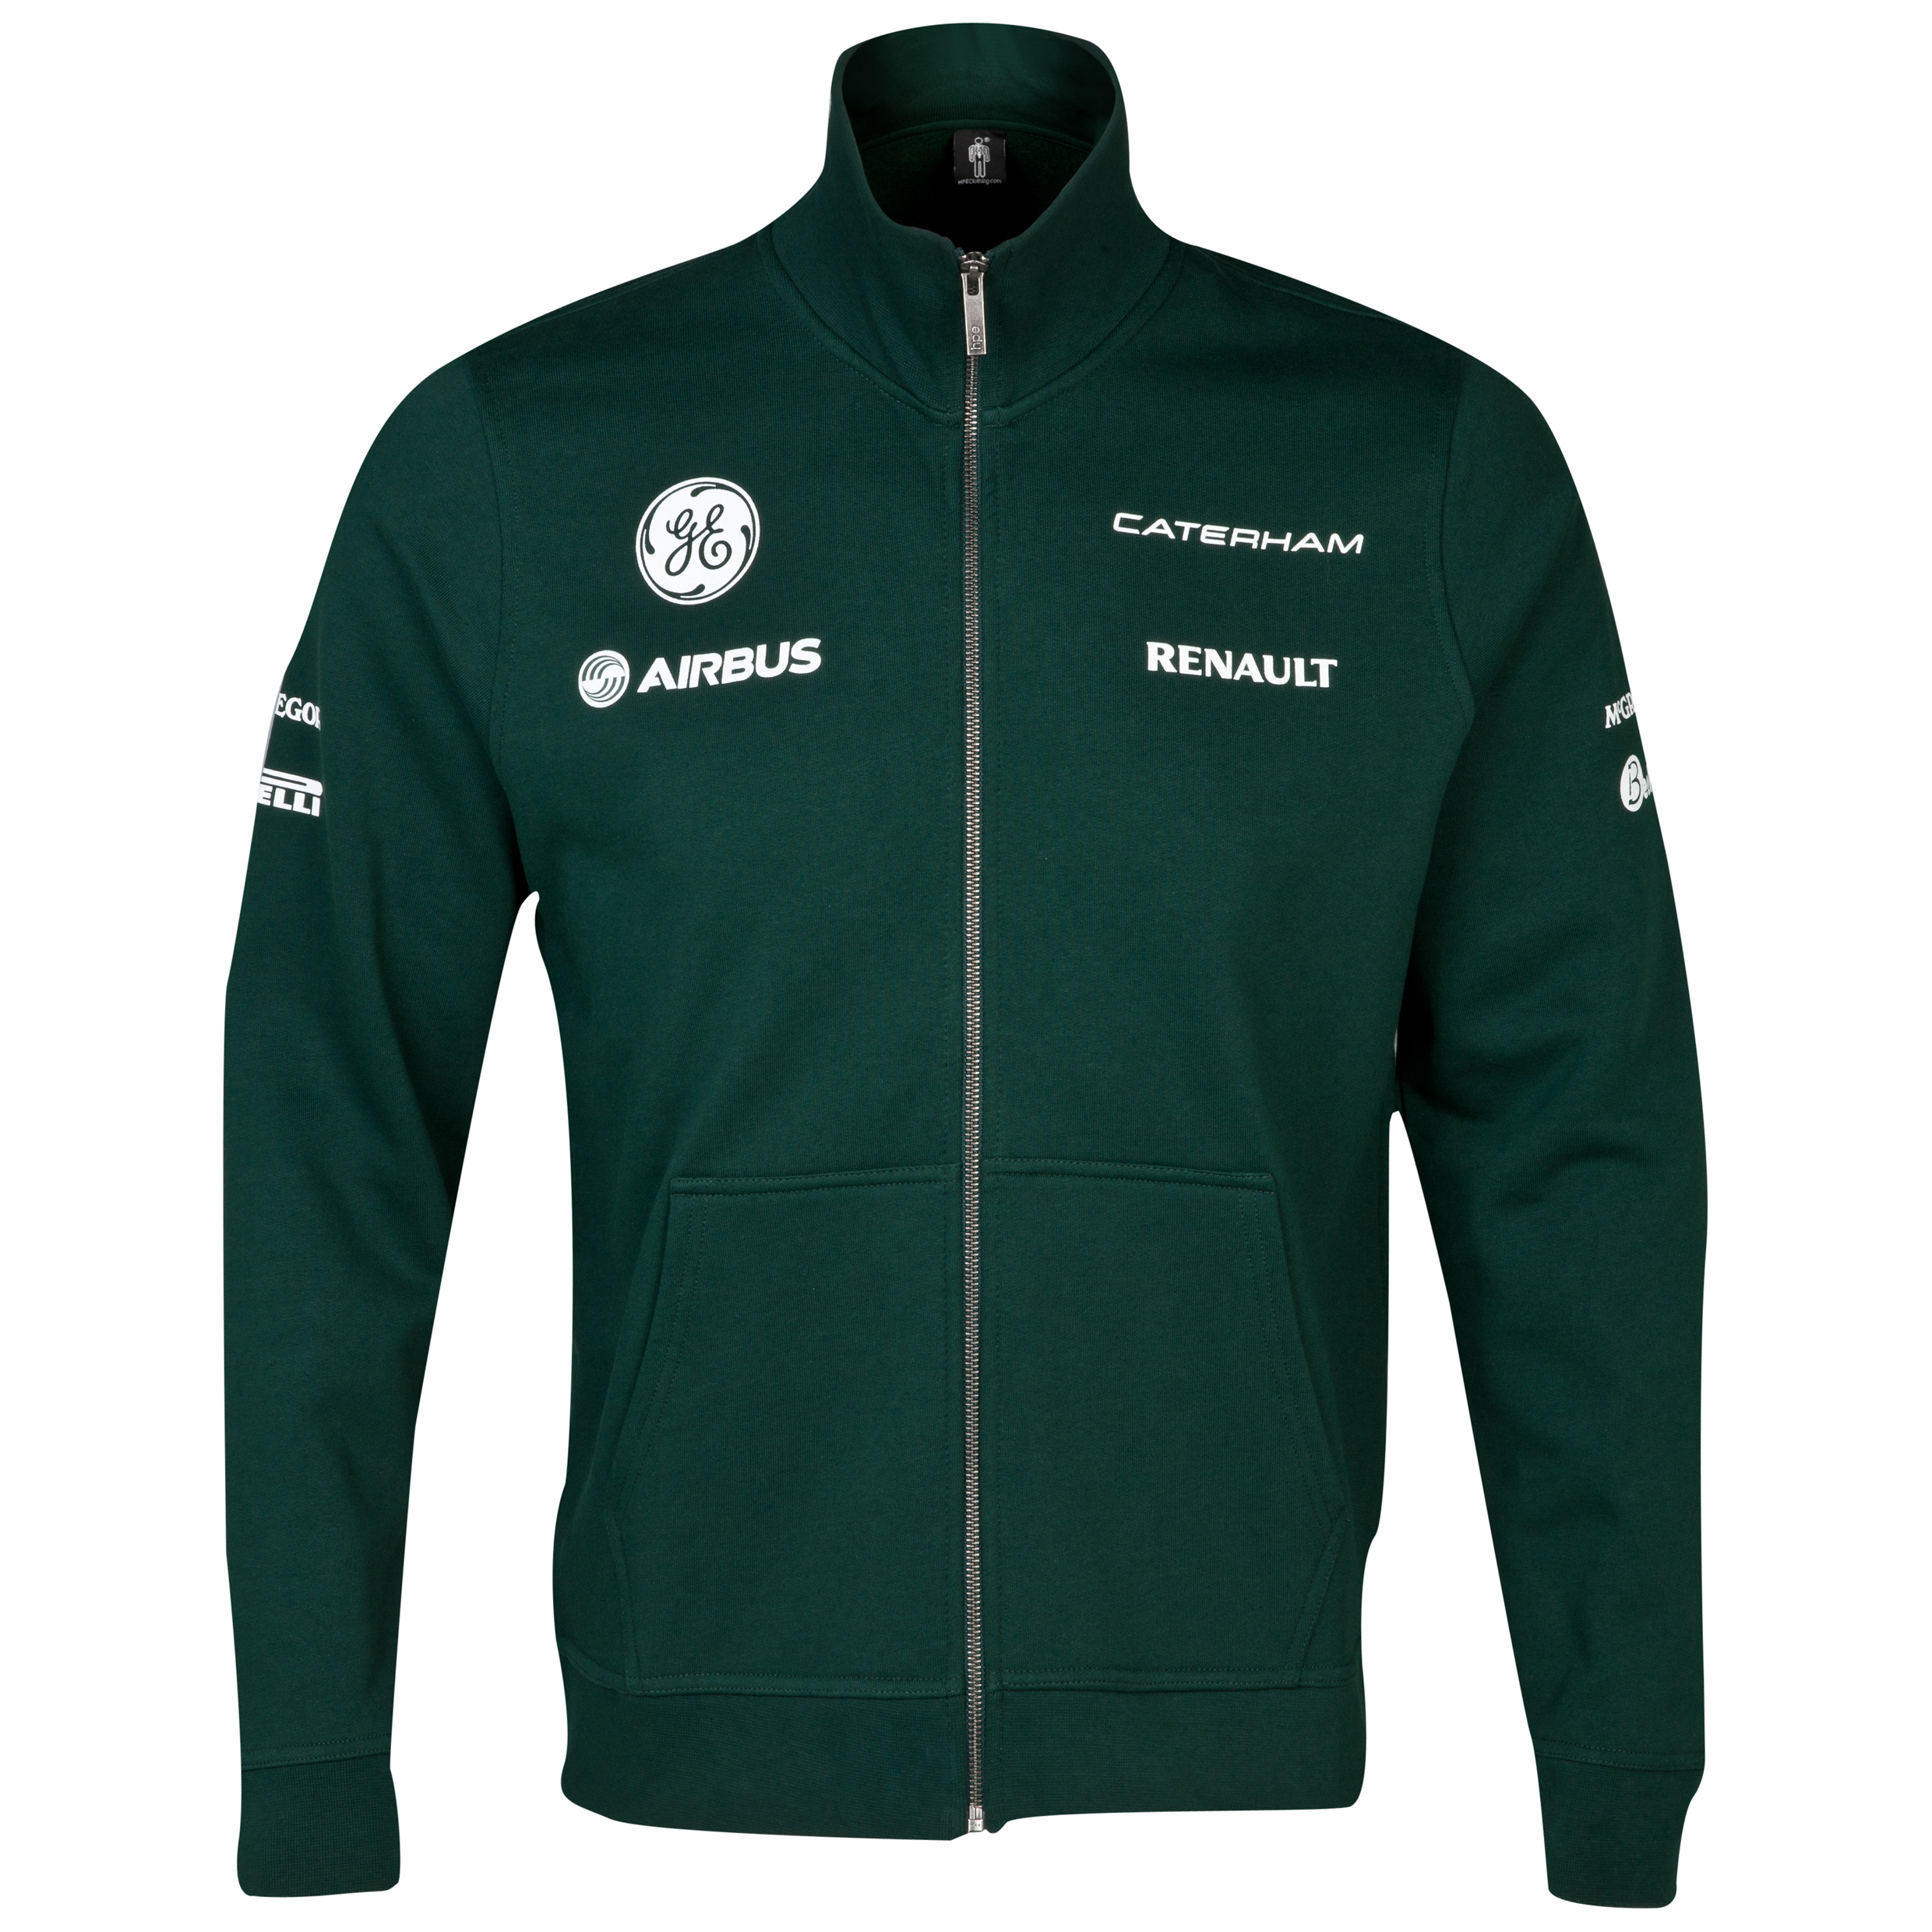 Caterham F1 Team Replica Full Zip Fleece Jacket